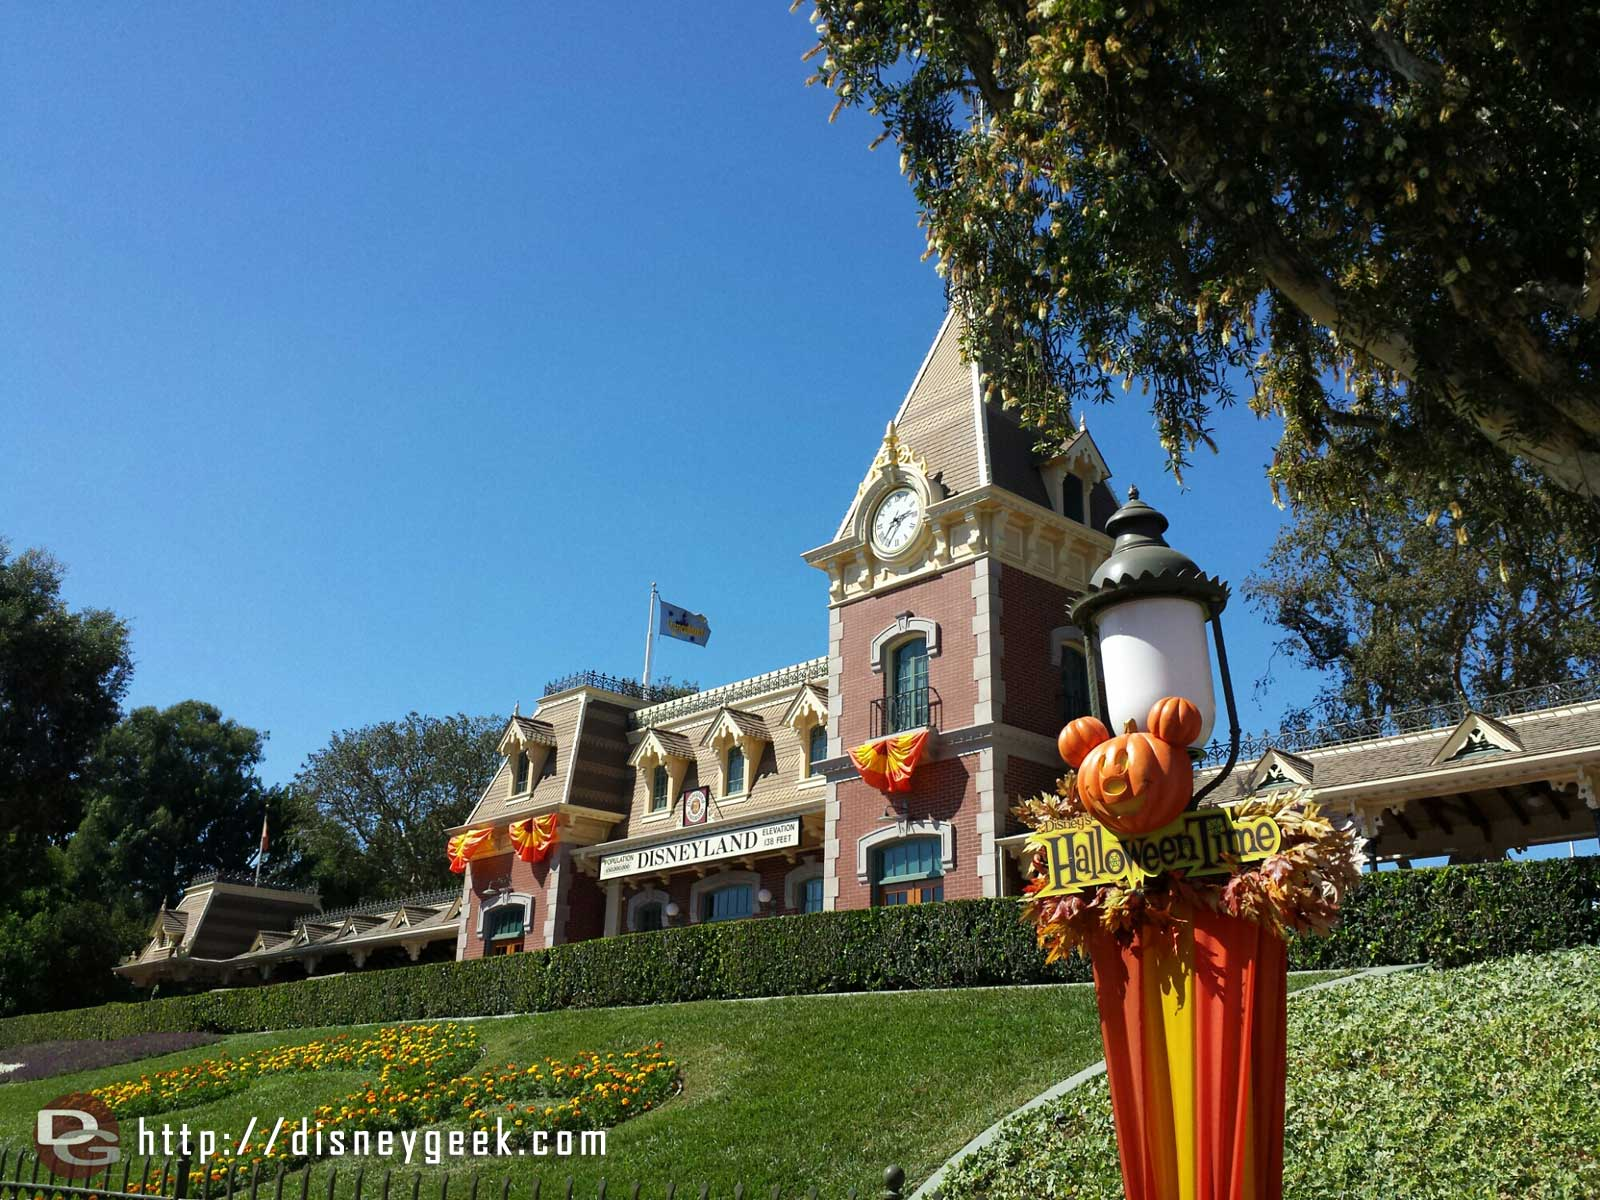 #Disneyland – #HalloweenTime sign & train station